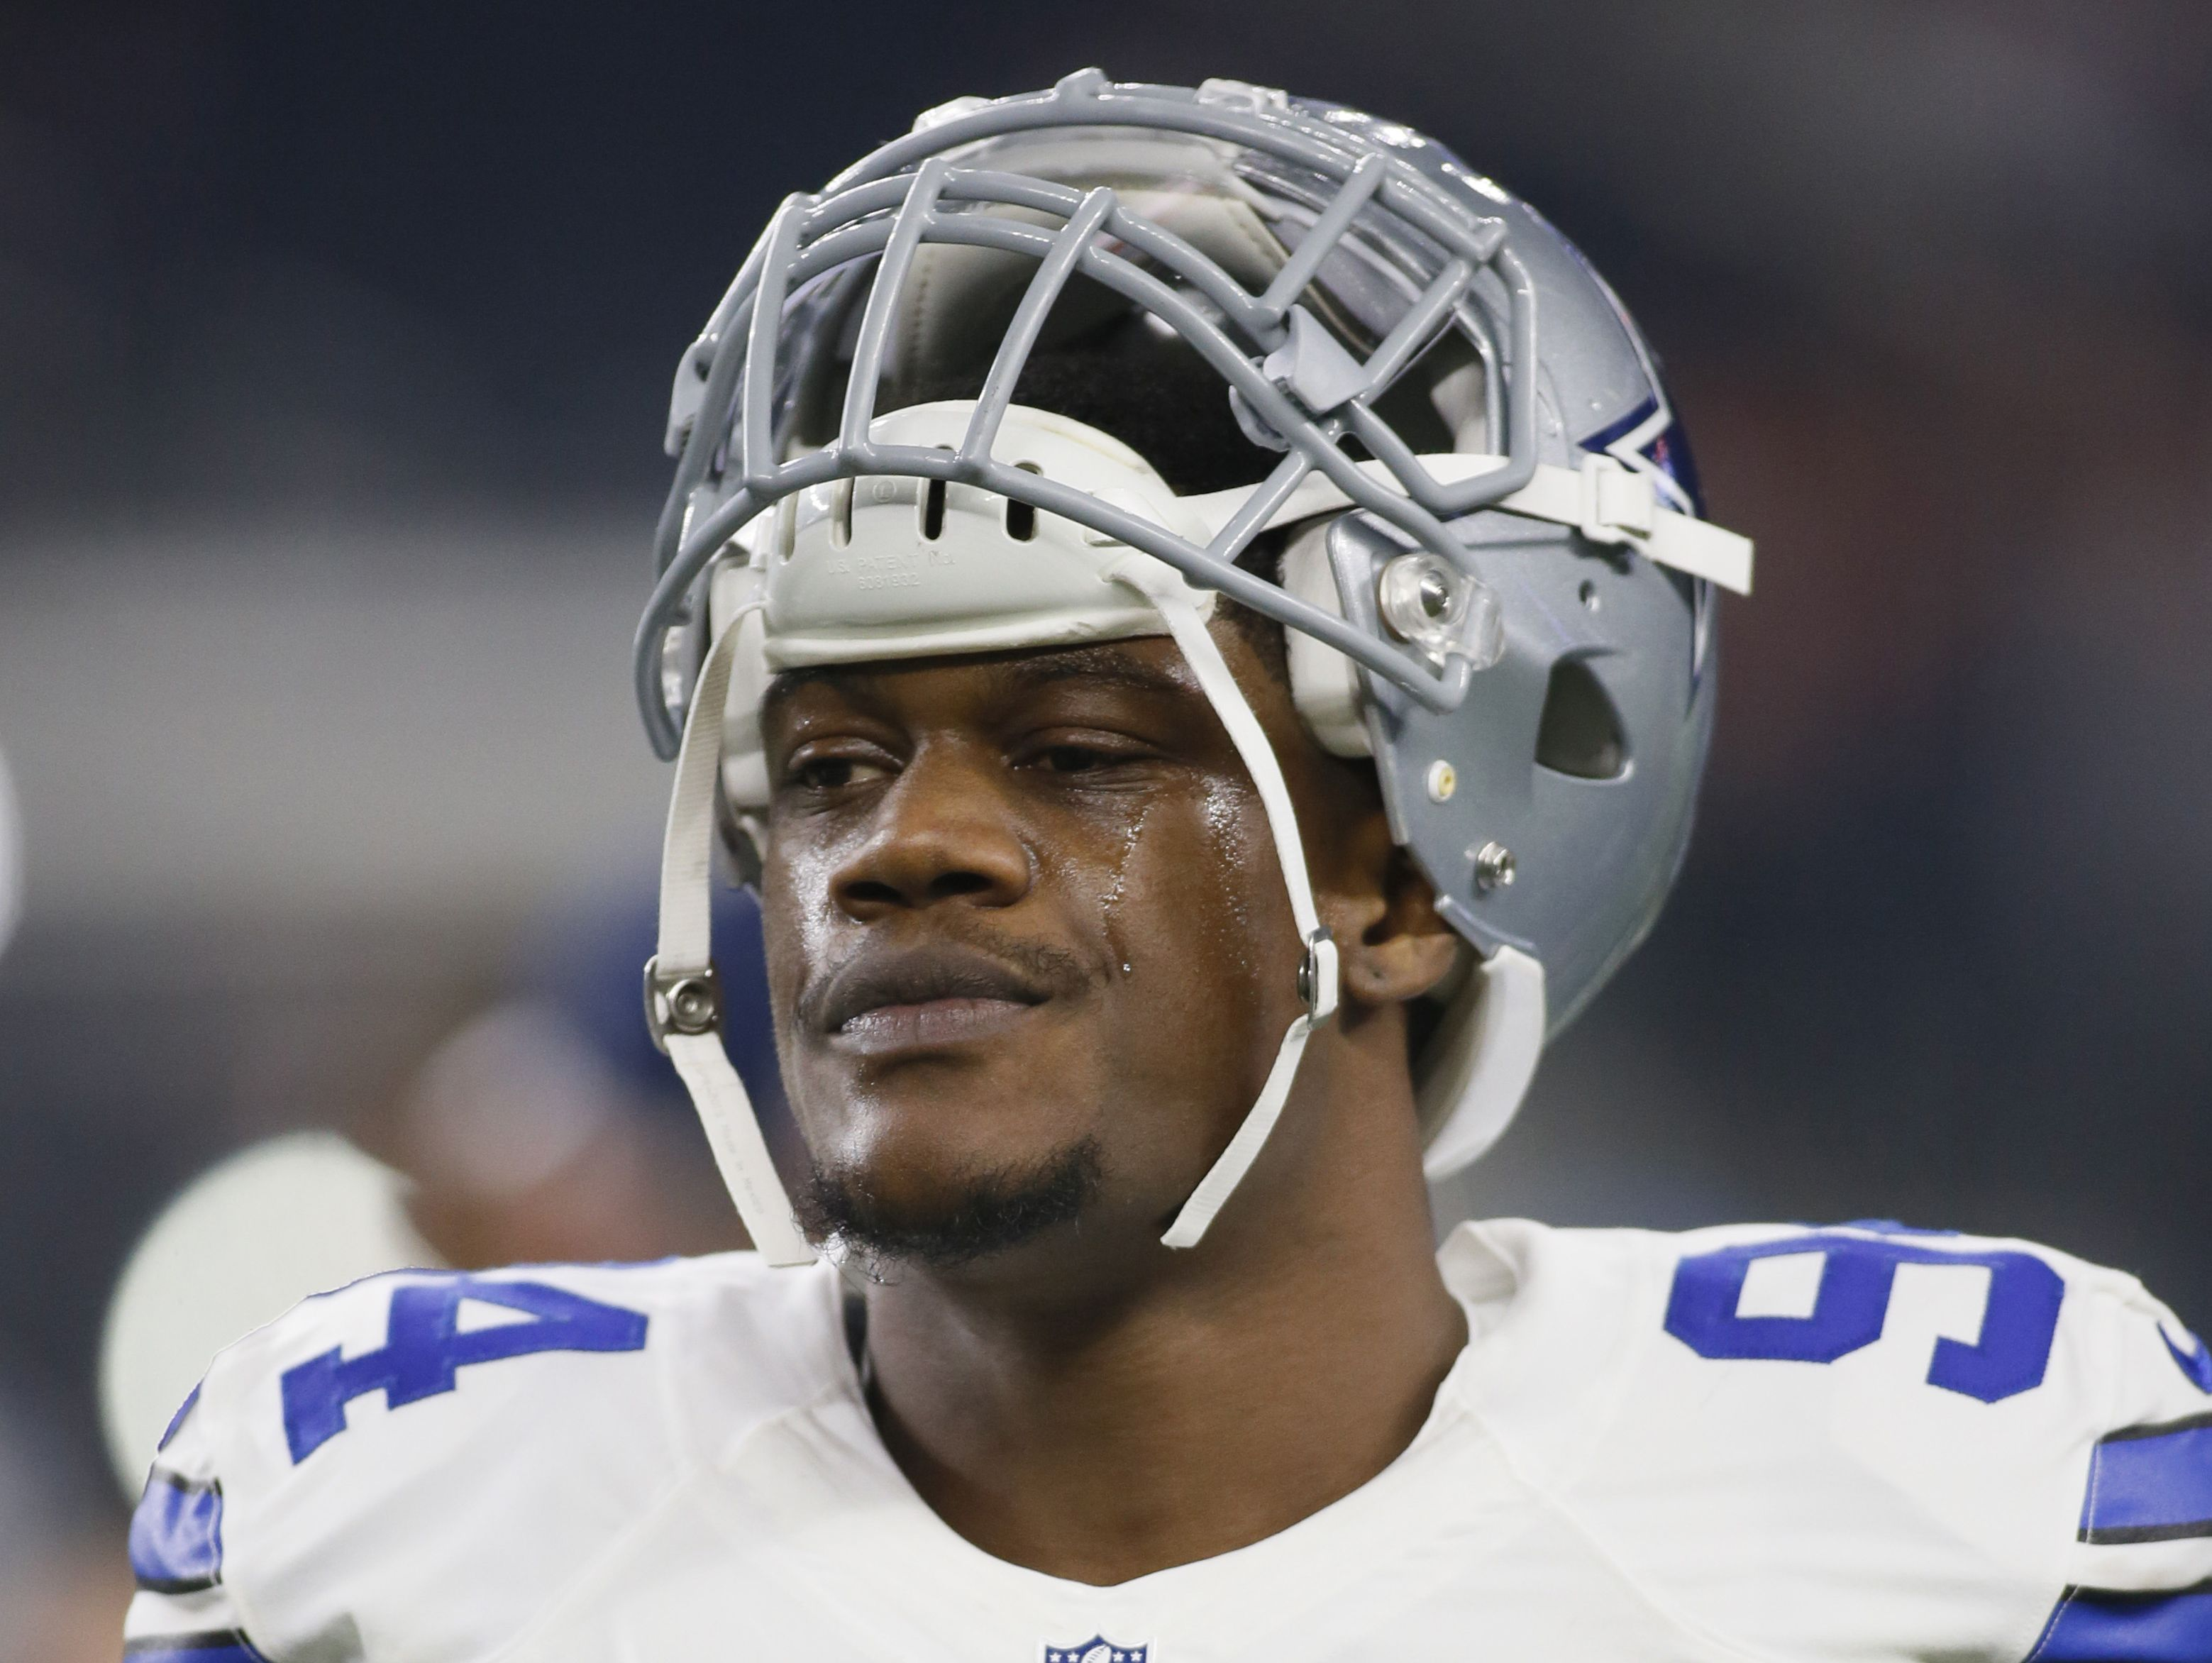 Dallas Cowboys defensive end Randy Gregory (94) on the field before the game against the Detroit Lions at AT&T Stadium.